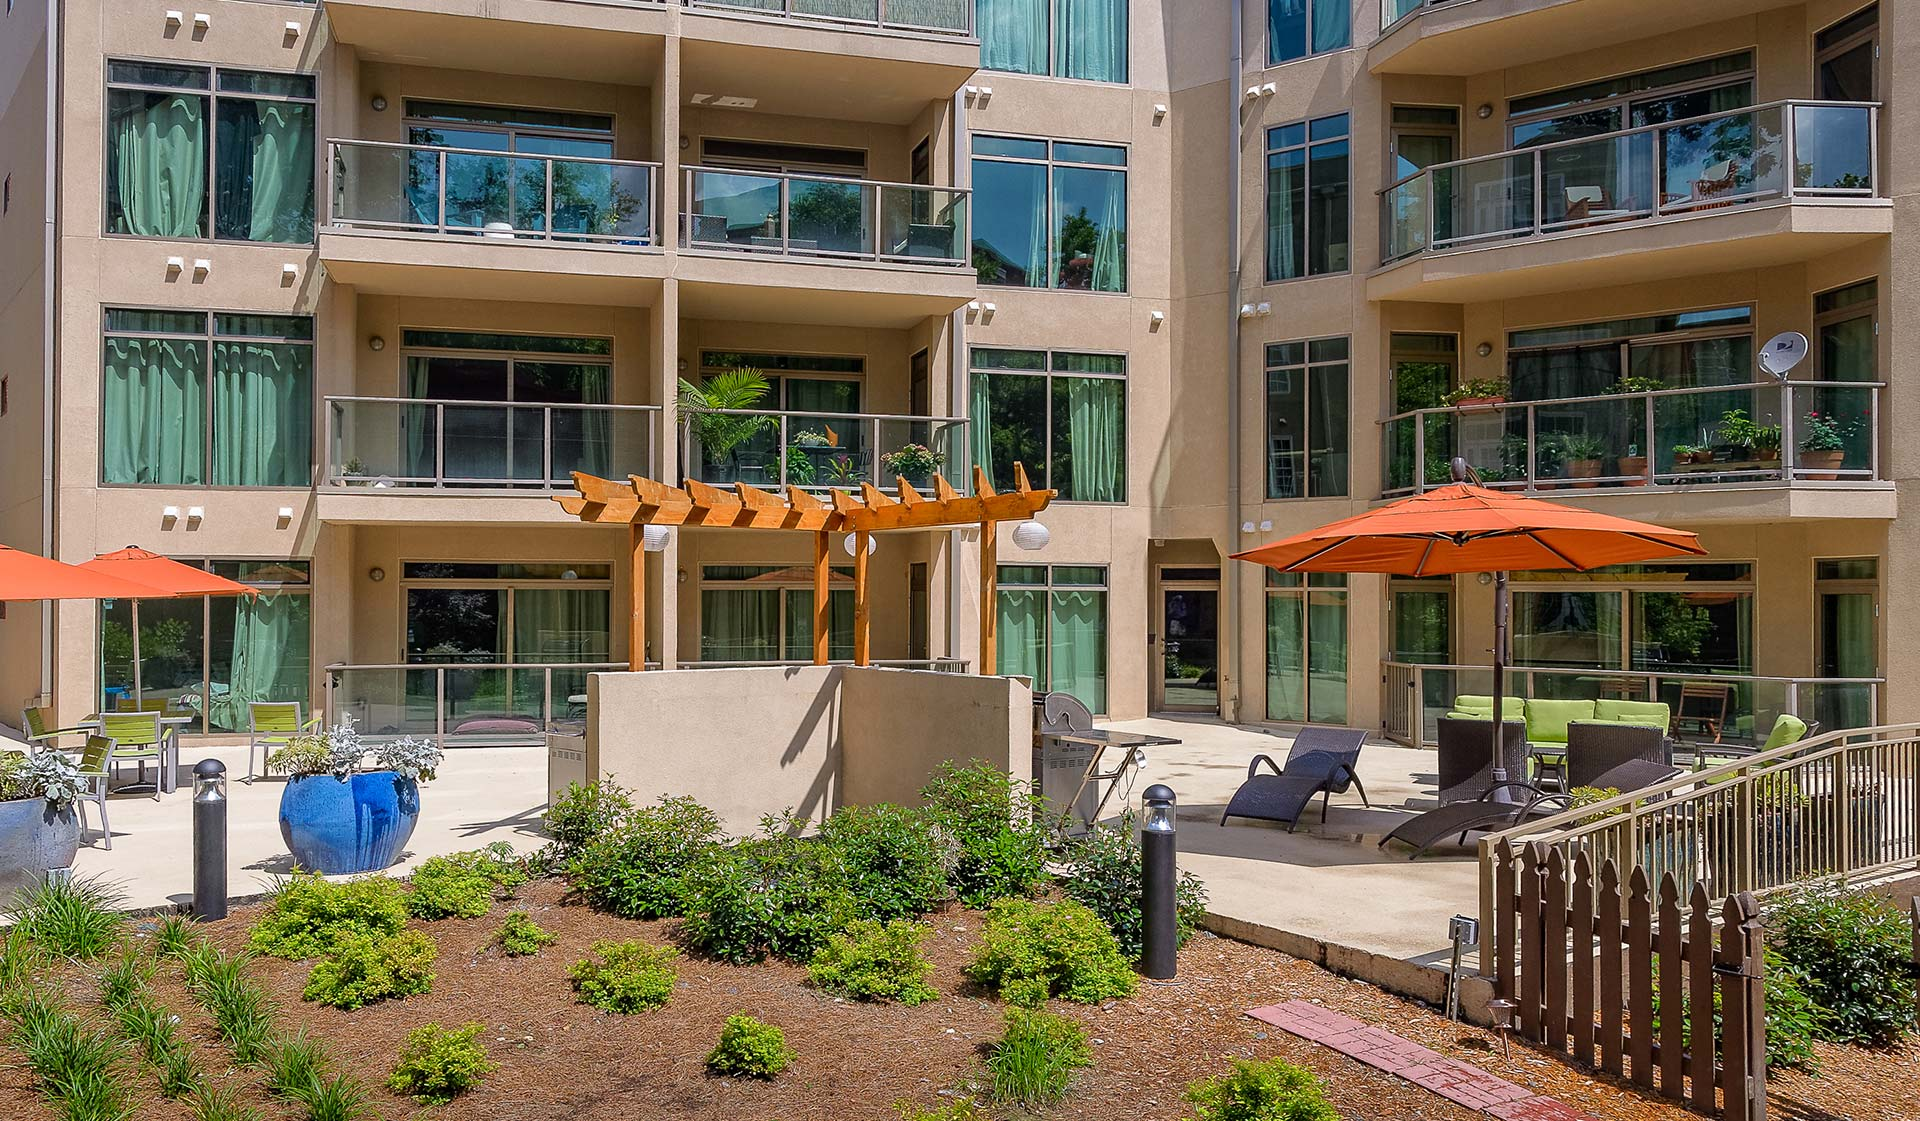 Midtown Atlanta Apartments for Rent - 1045 on the Park Apartment Homes